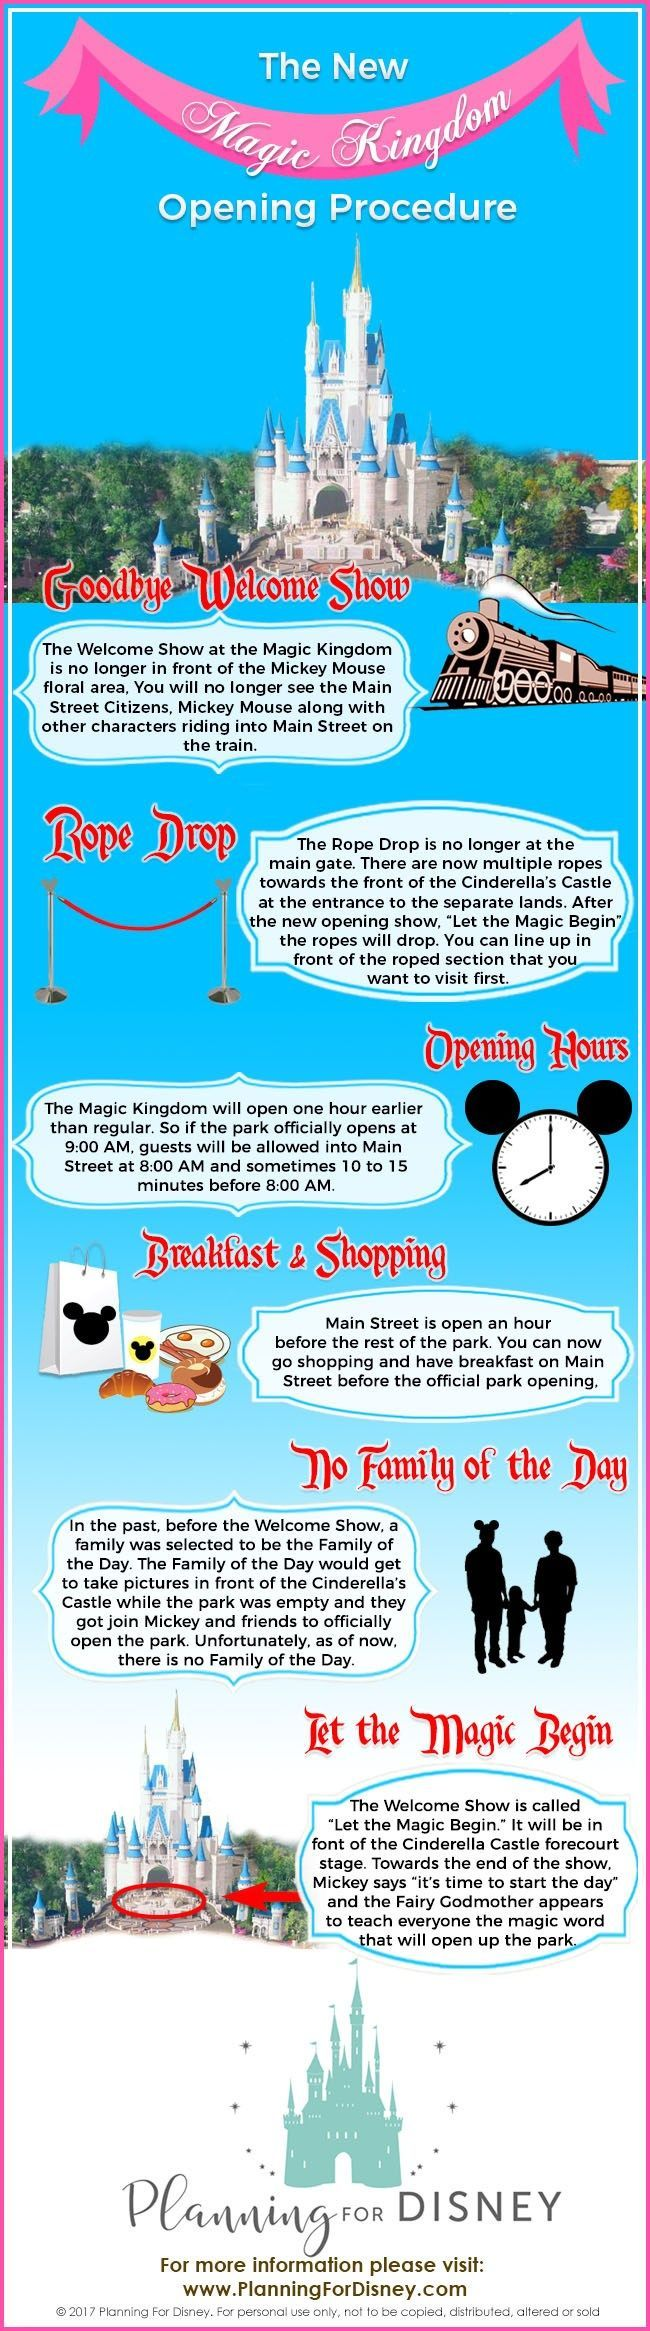 10 Things you Need to Know about the Magic Kingdom New Morning Procedure. Know before you go. Pin it and read it later. � Planning For Disney